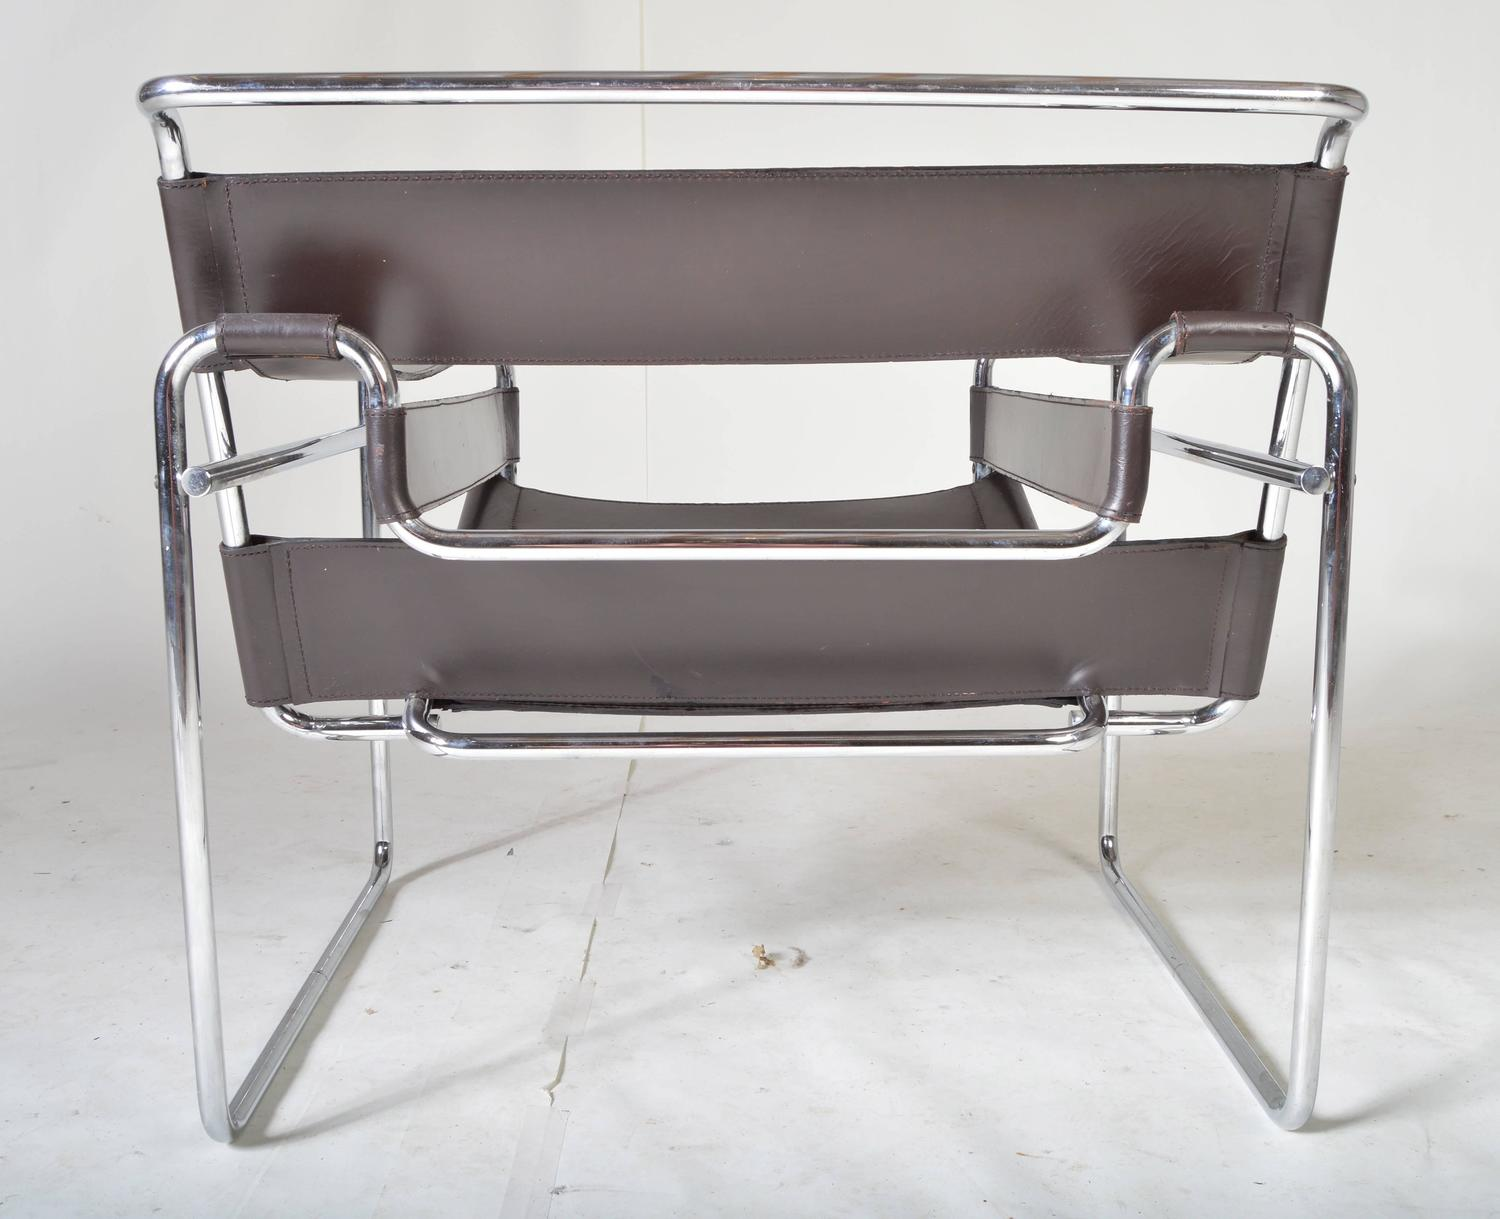 breuer chairs for sale wheelchair battery vintage 1960s wassily chair by marcel gavina